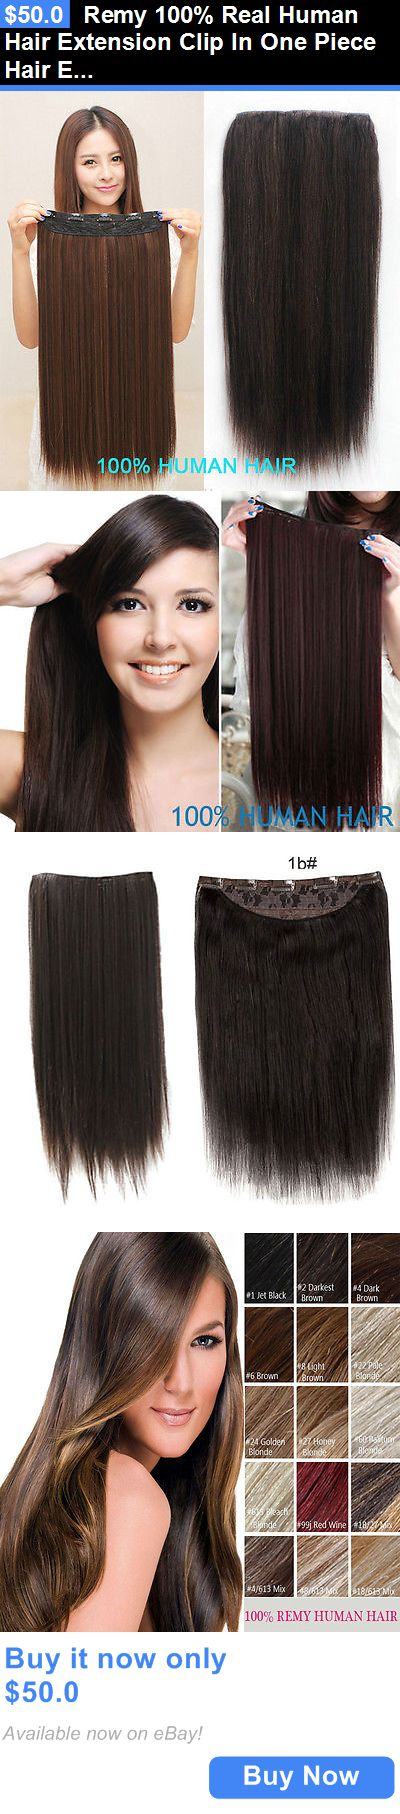 The 25 best diy hair extension clips ideas on pinterest diy hair extensions remy 100 real human hair extension clip in one piece hair extensions pmusecretfo Choice Image